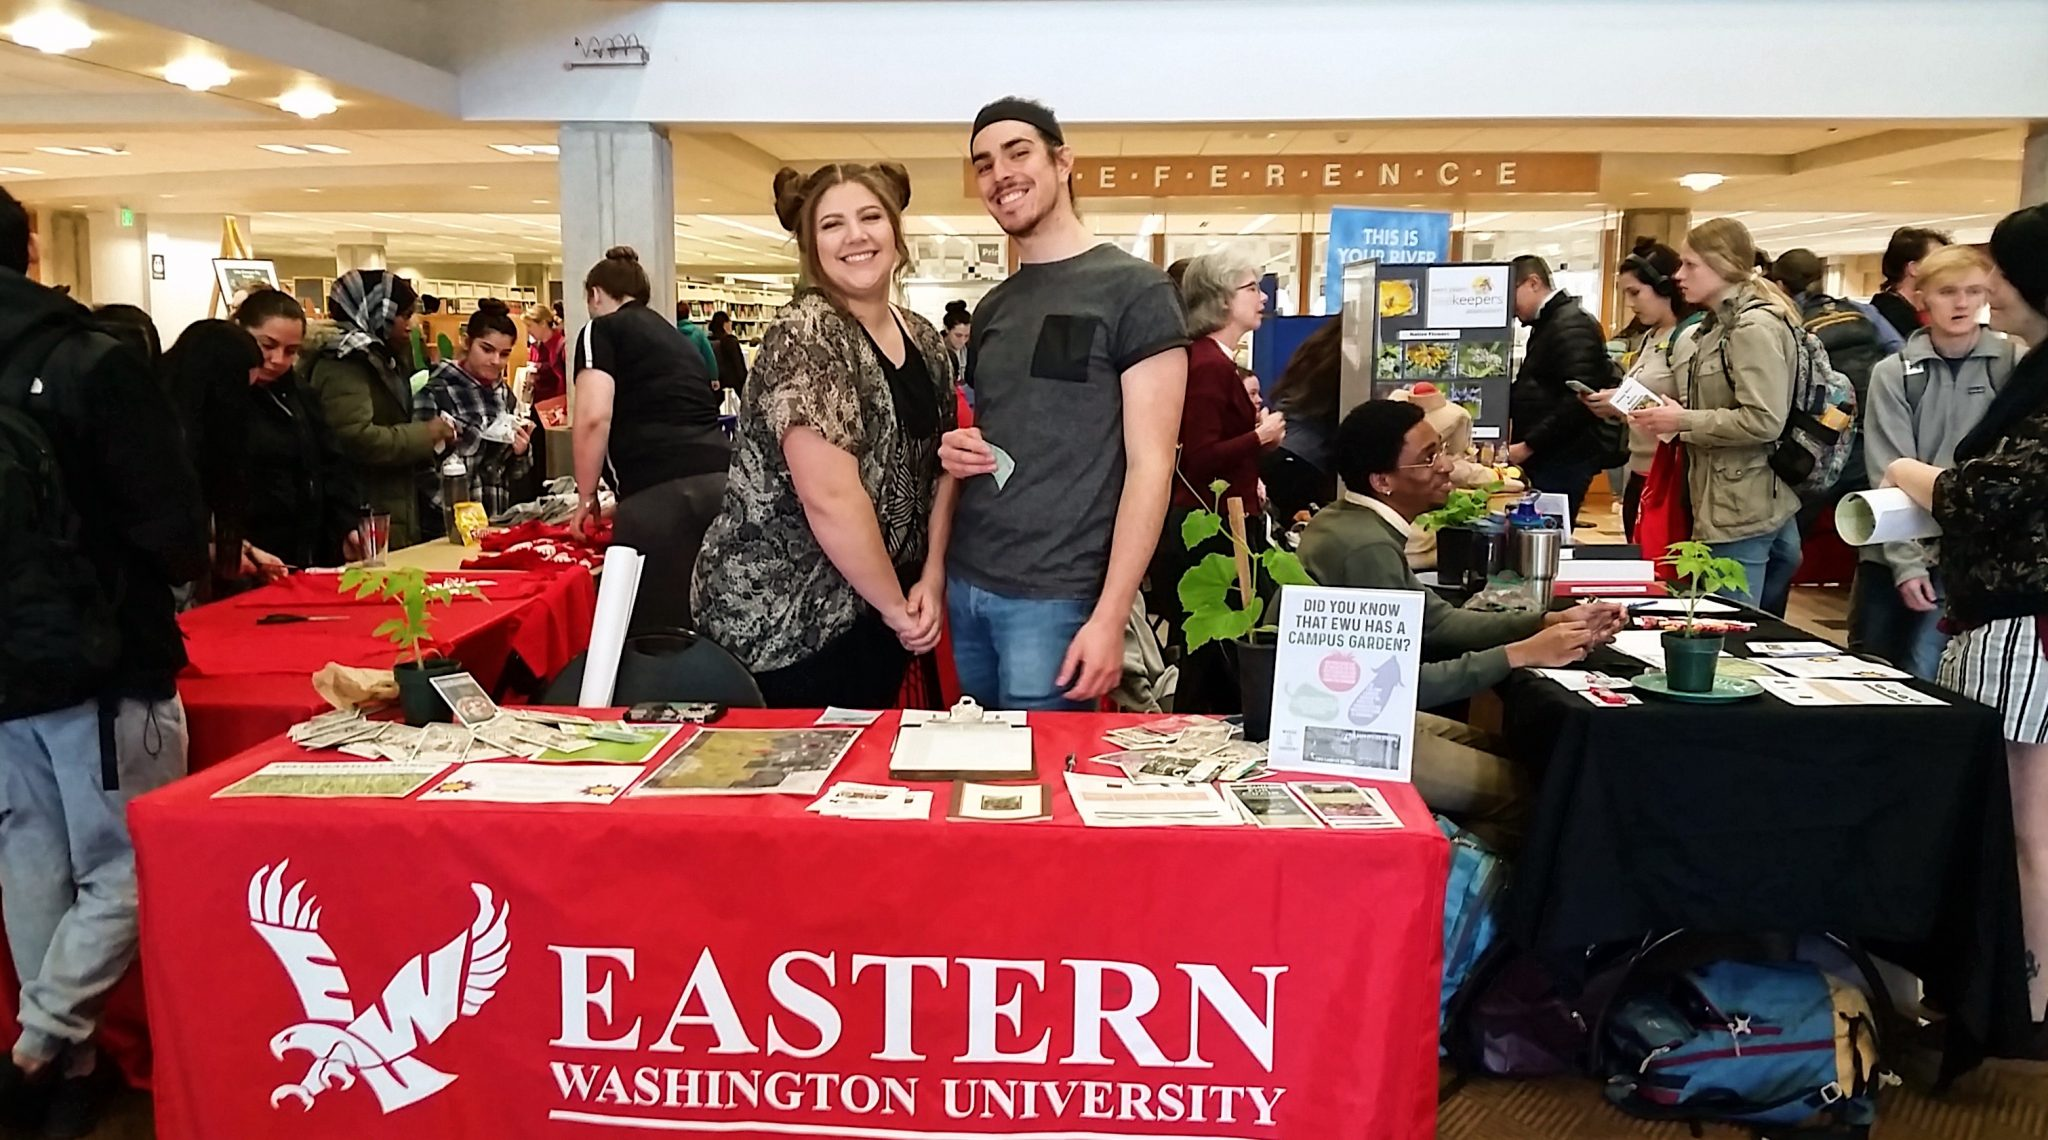 Two people pose behind their table for a picture in the crowded library.